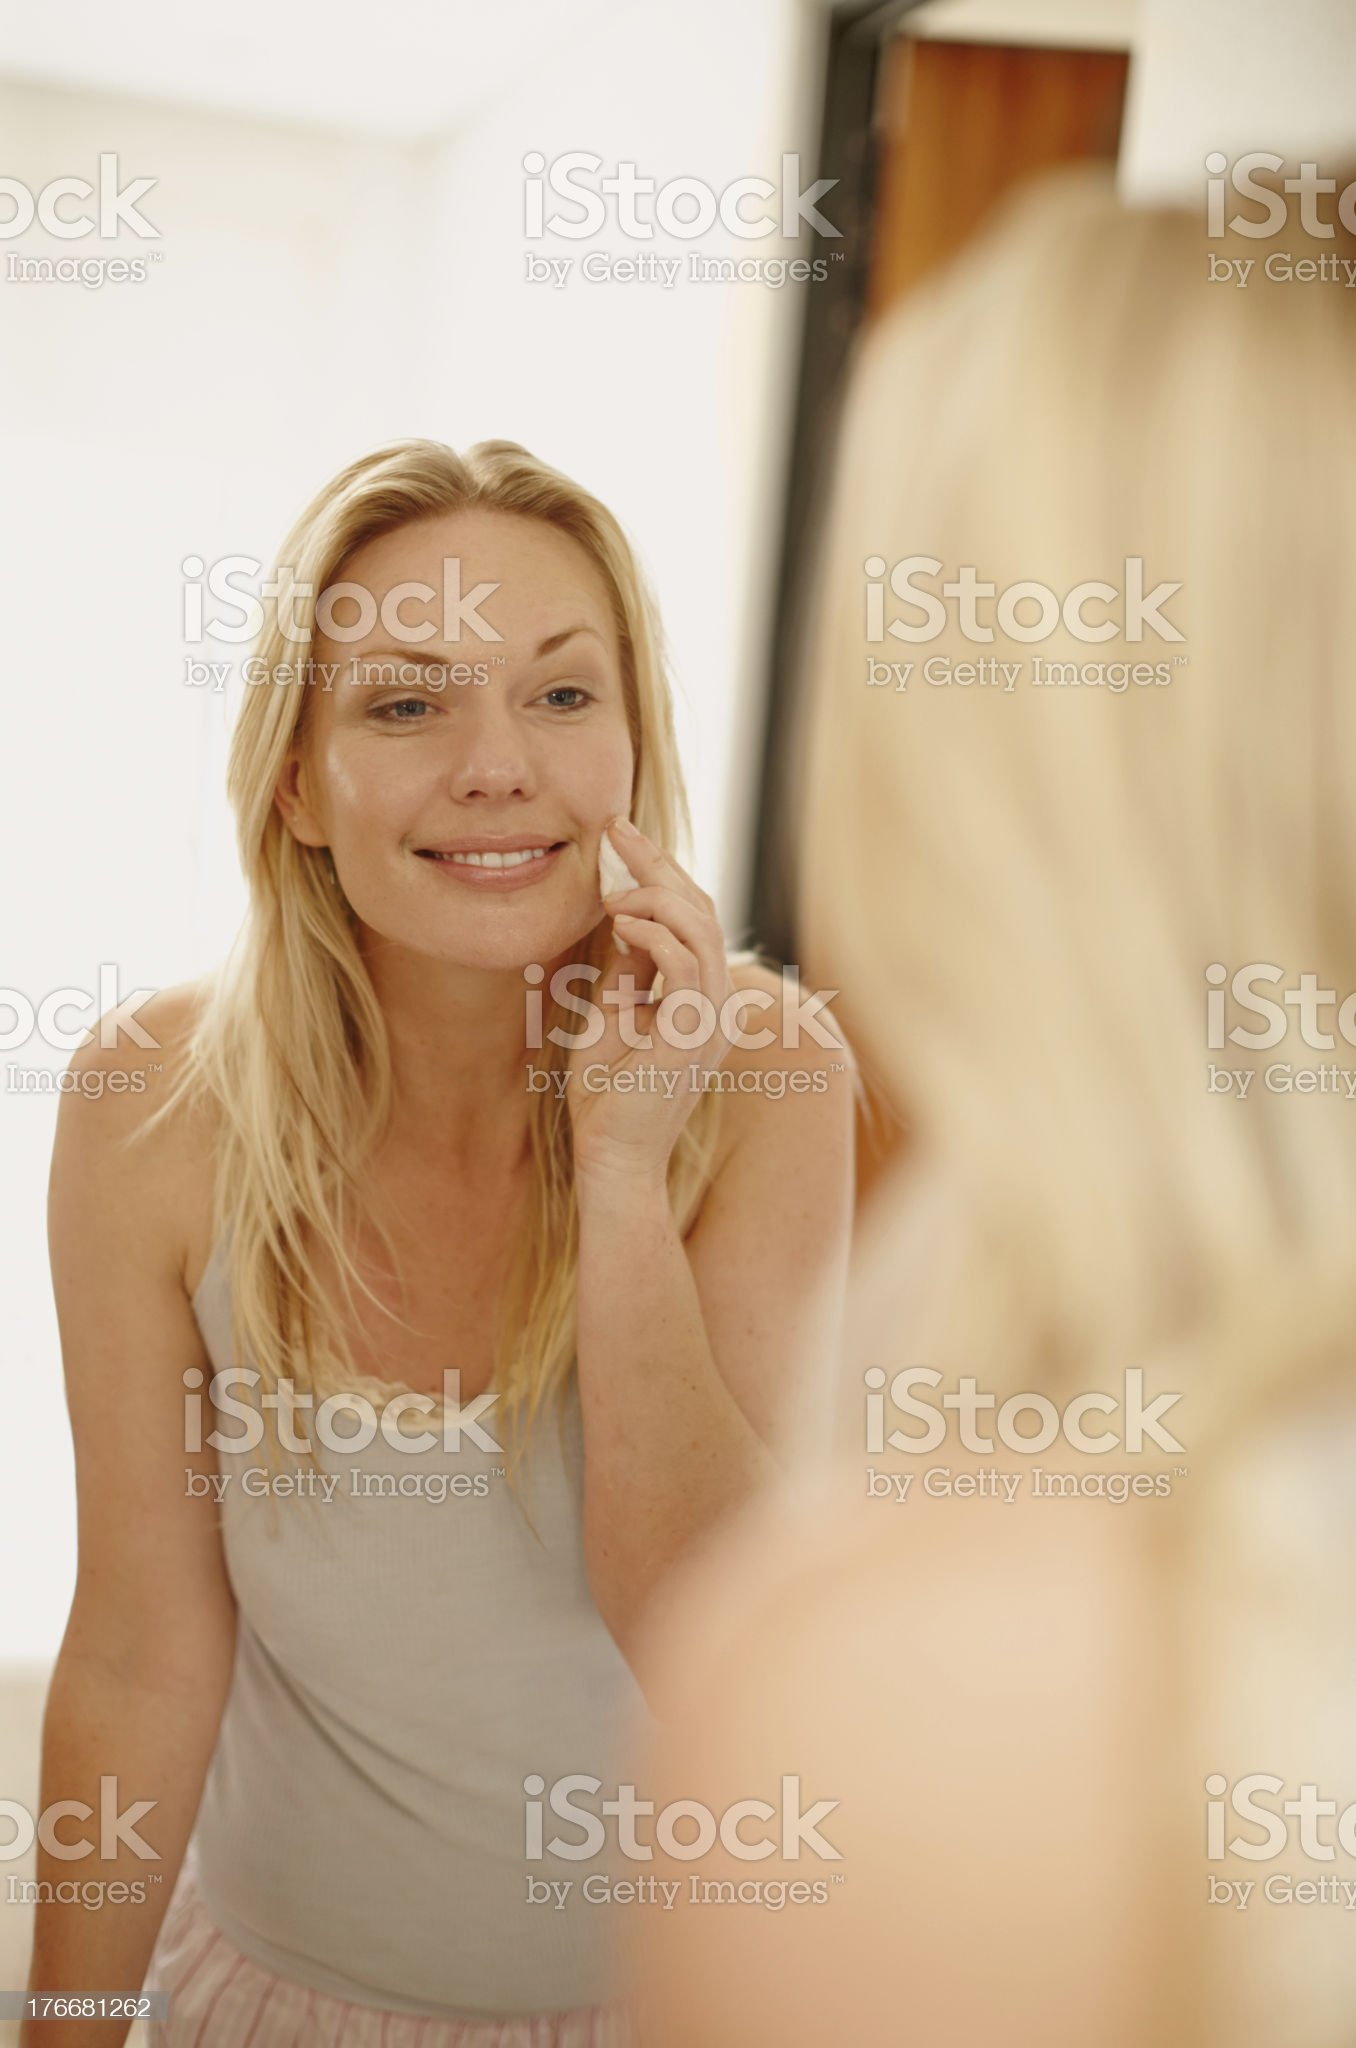 I stick to my beauty regime royalty-free stock photo